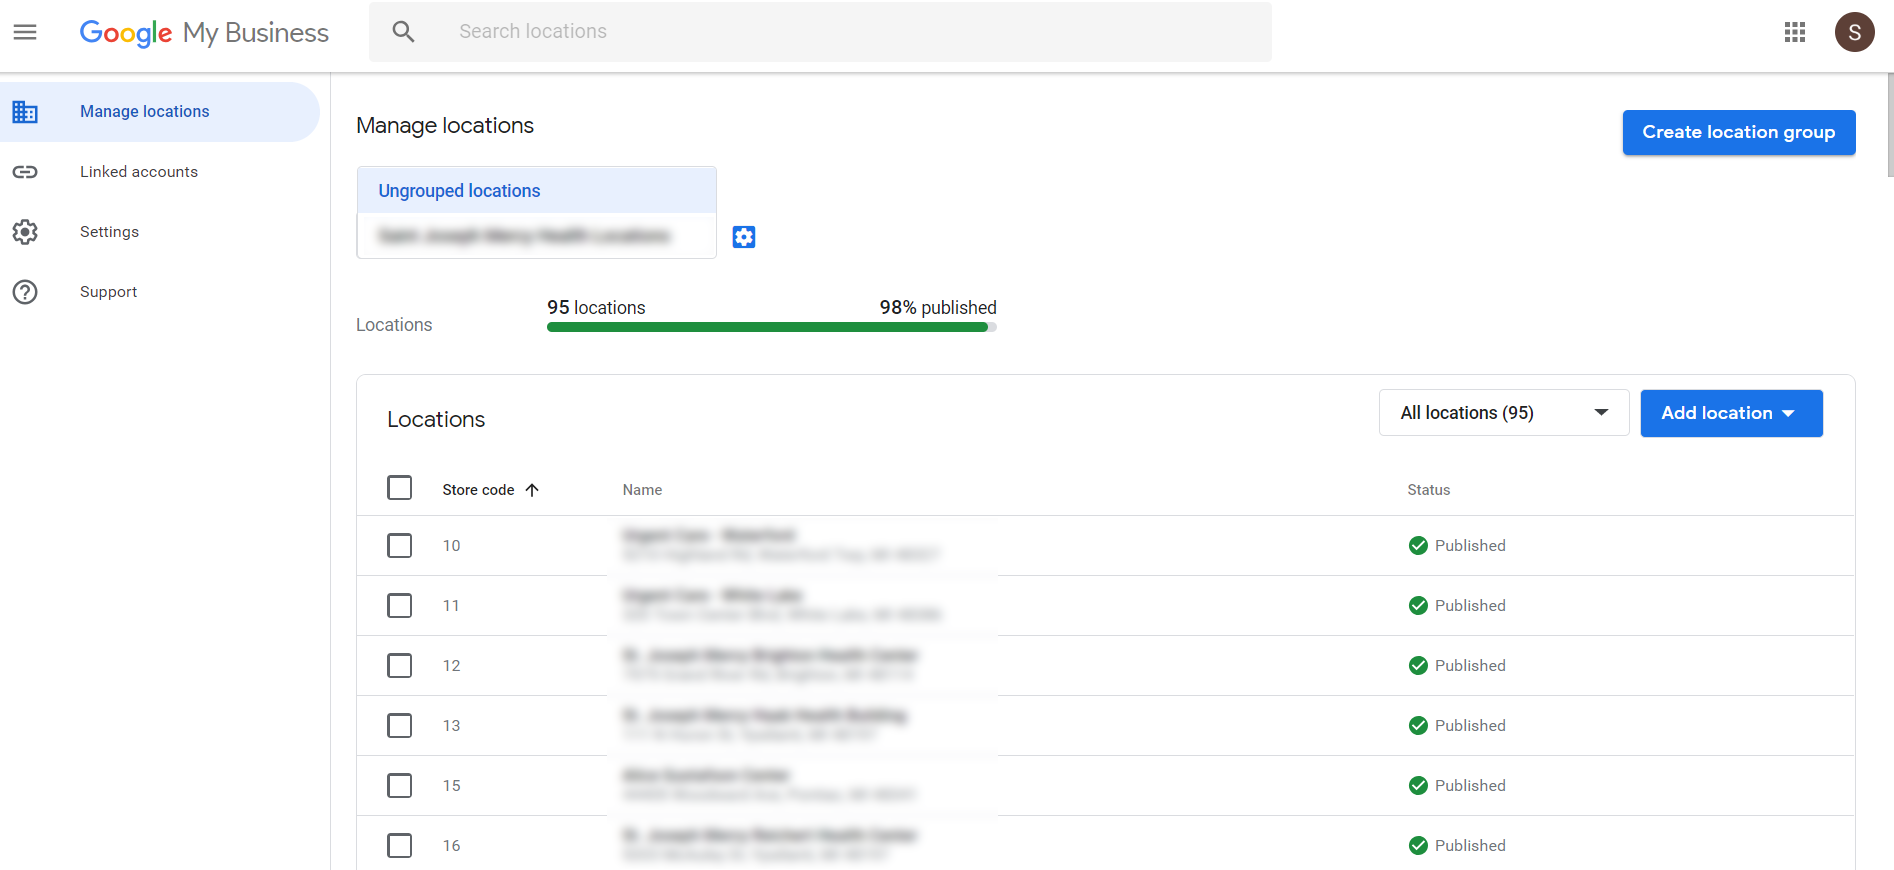 Navigating The New Google My Business Dashboard